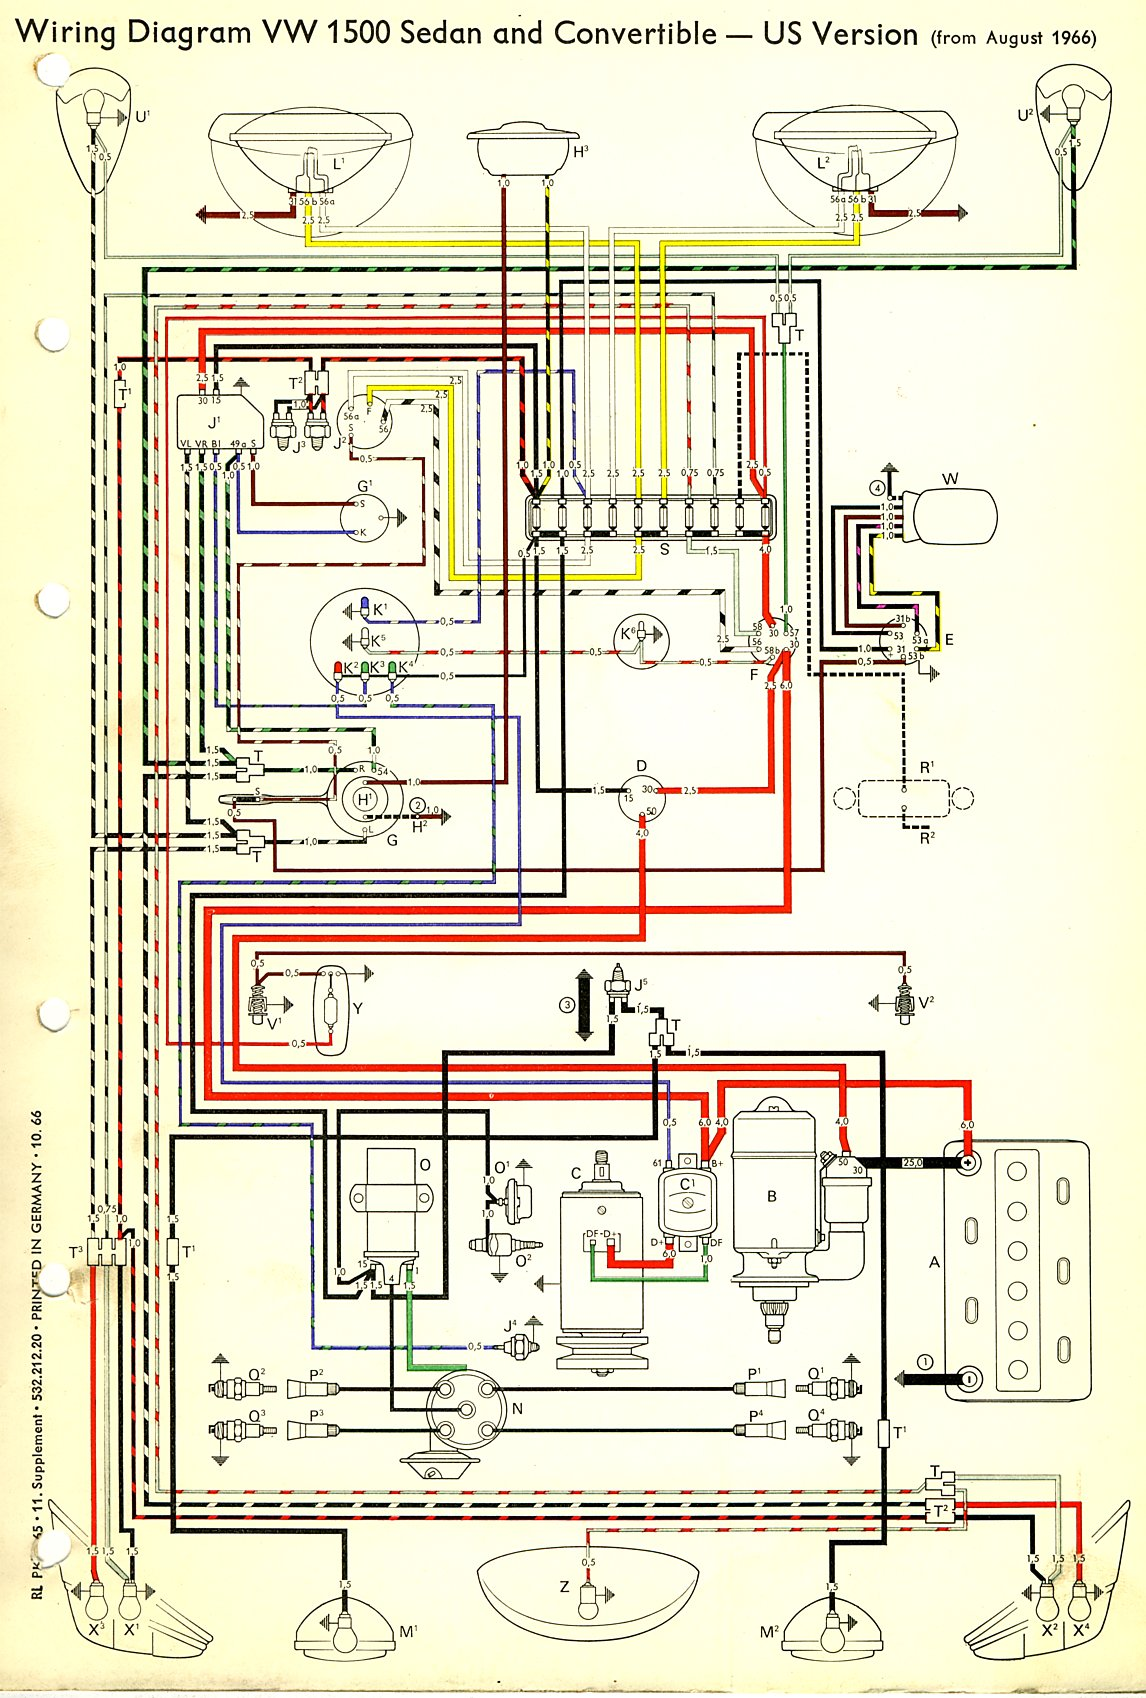 hight resolution of 1971 vw wiring diagram images gallery